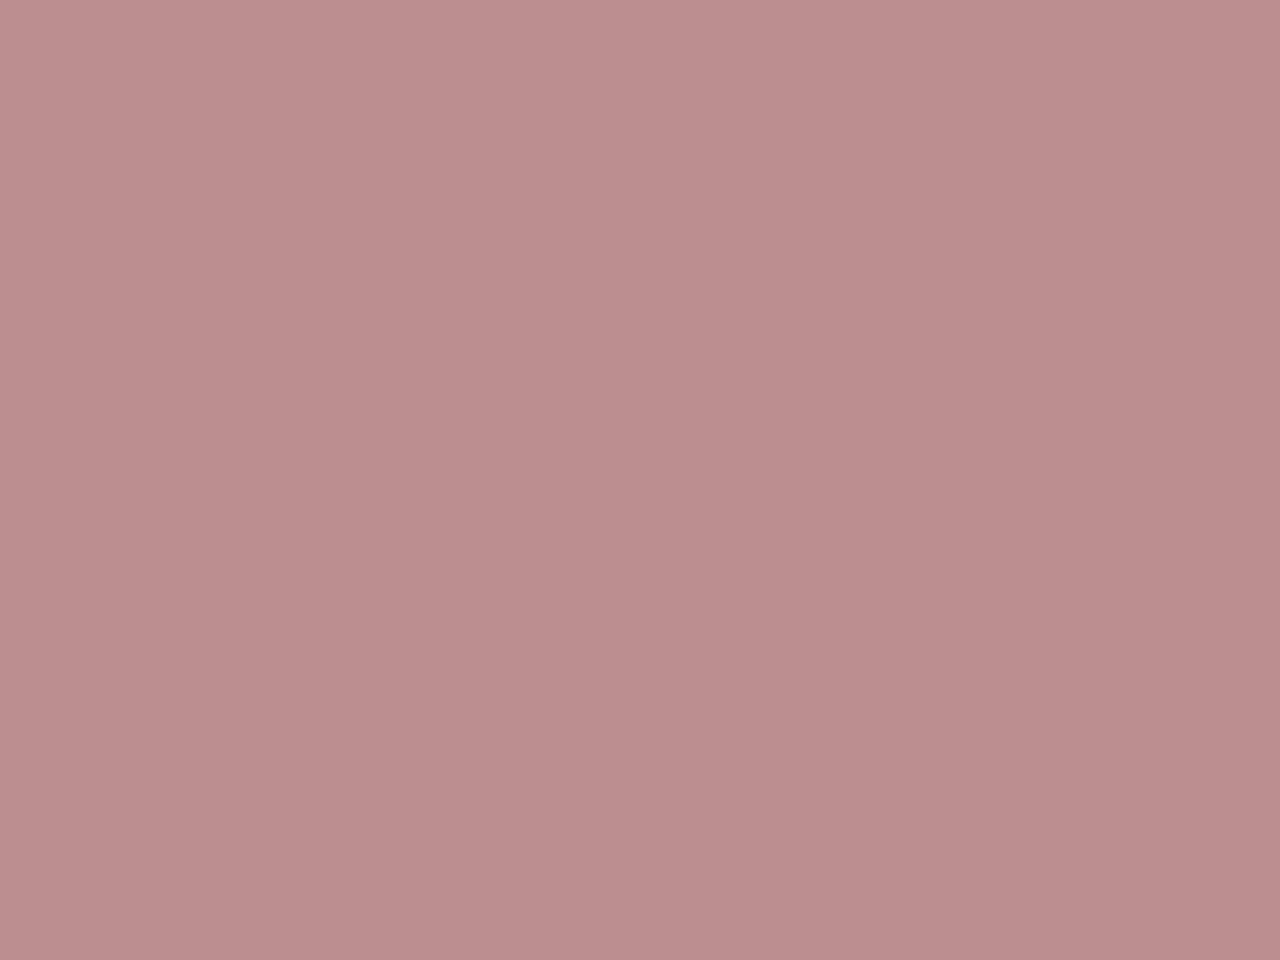 1280x960 Rosy Brown Solid Color Background